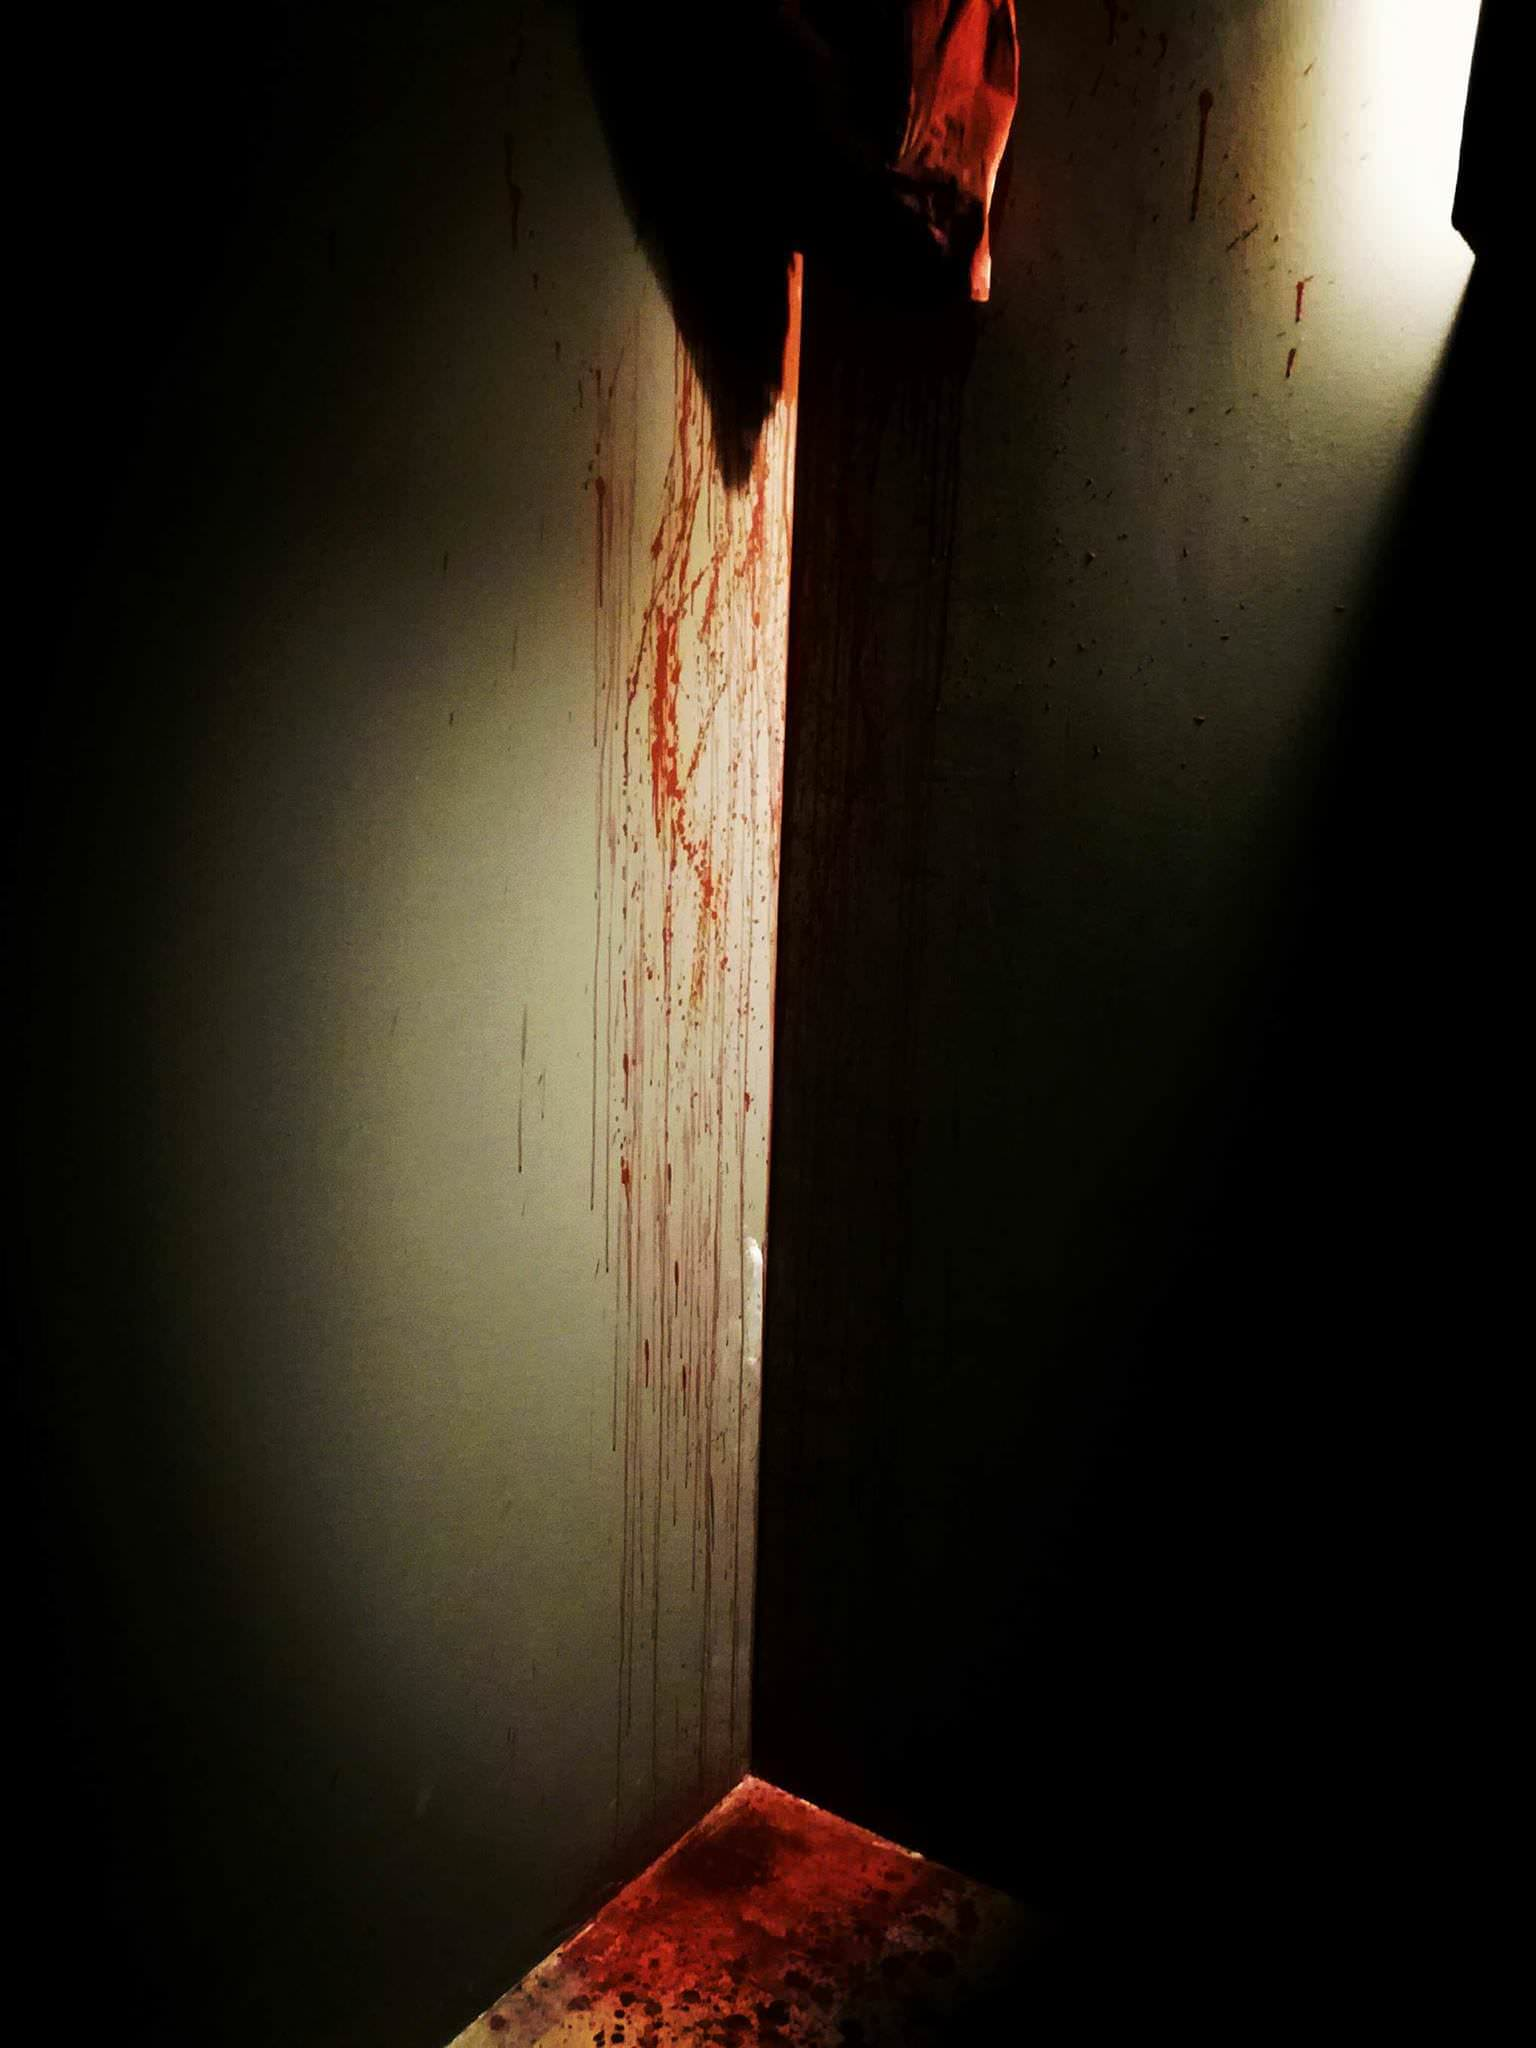 BLOOD EVERYWHERE HOSTEL ESCAPE ROOM